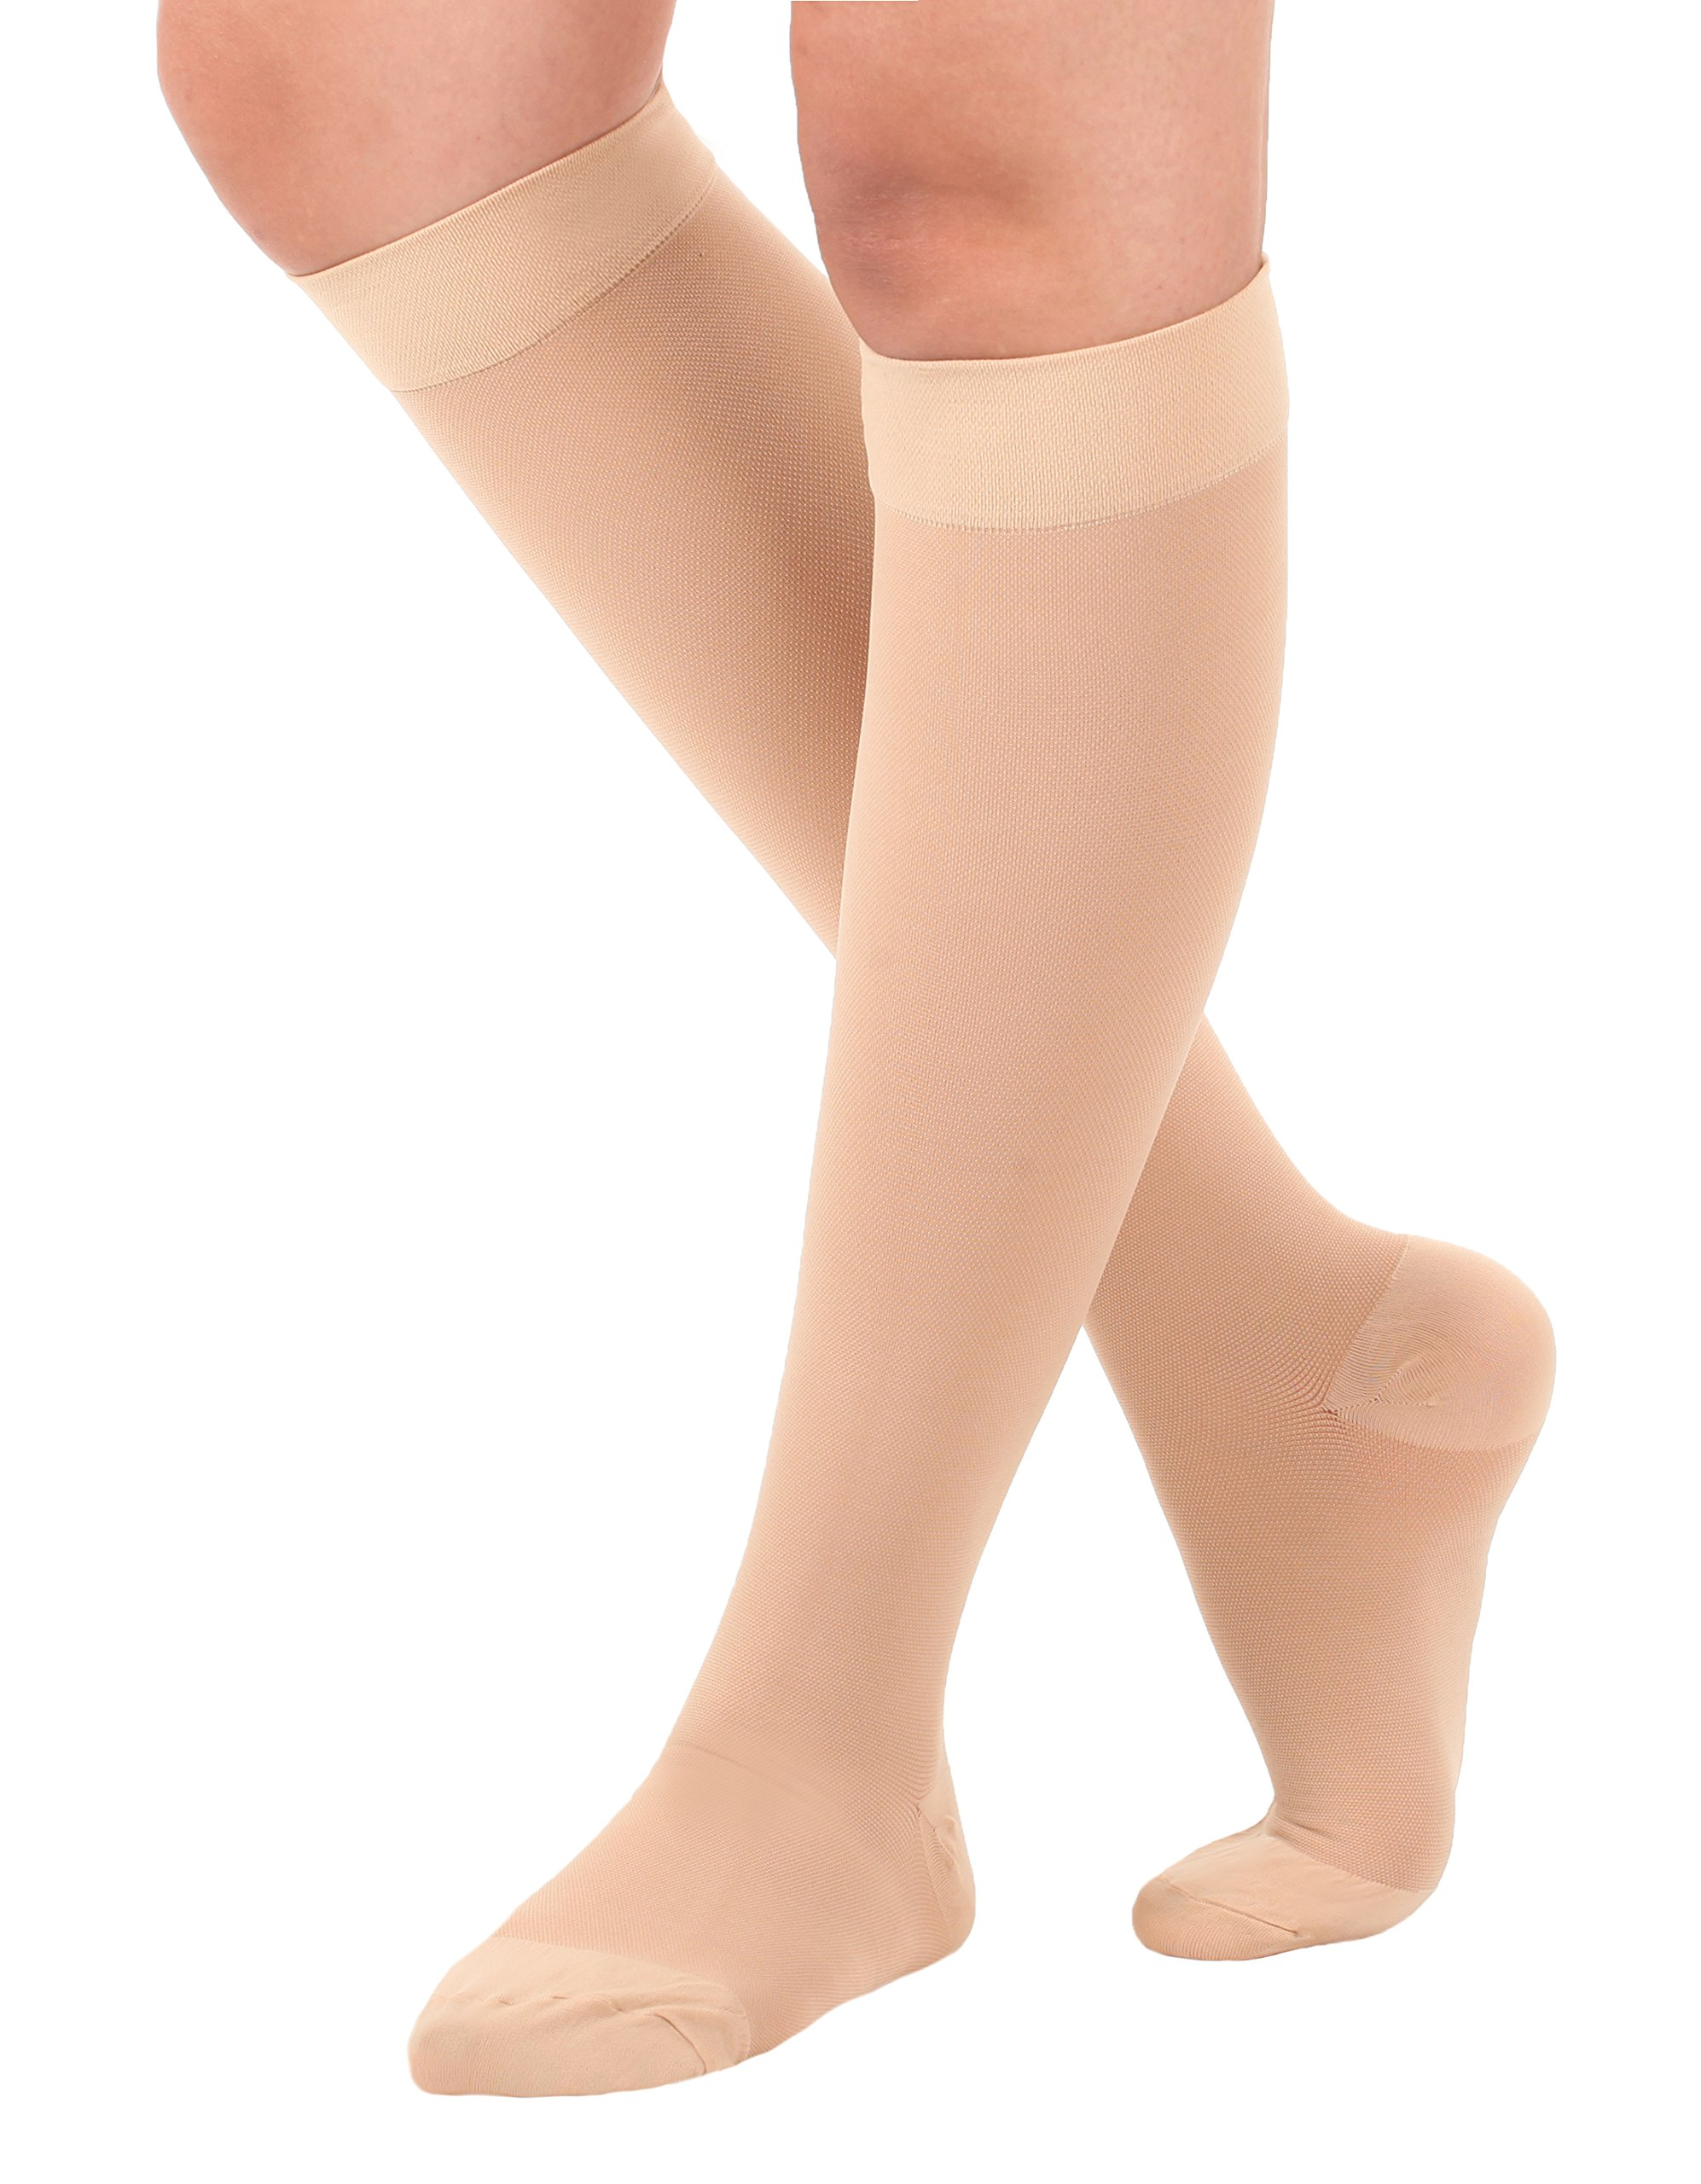 5XL Opaque Mojo Compression Socks, Knee-Hi - Firm Medical Support Hose - Closed Toe, 20-30 mmHg Graduated Compression Stockings (Size: XXXXXL, Beige) Support Stockings for Men and Woman